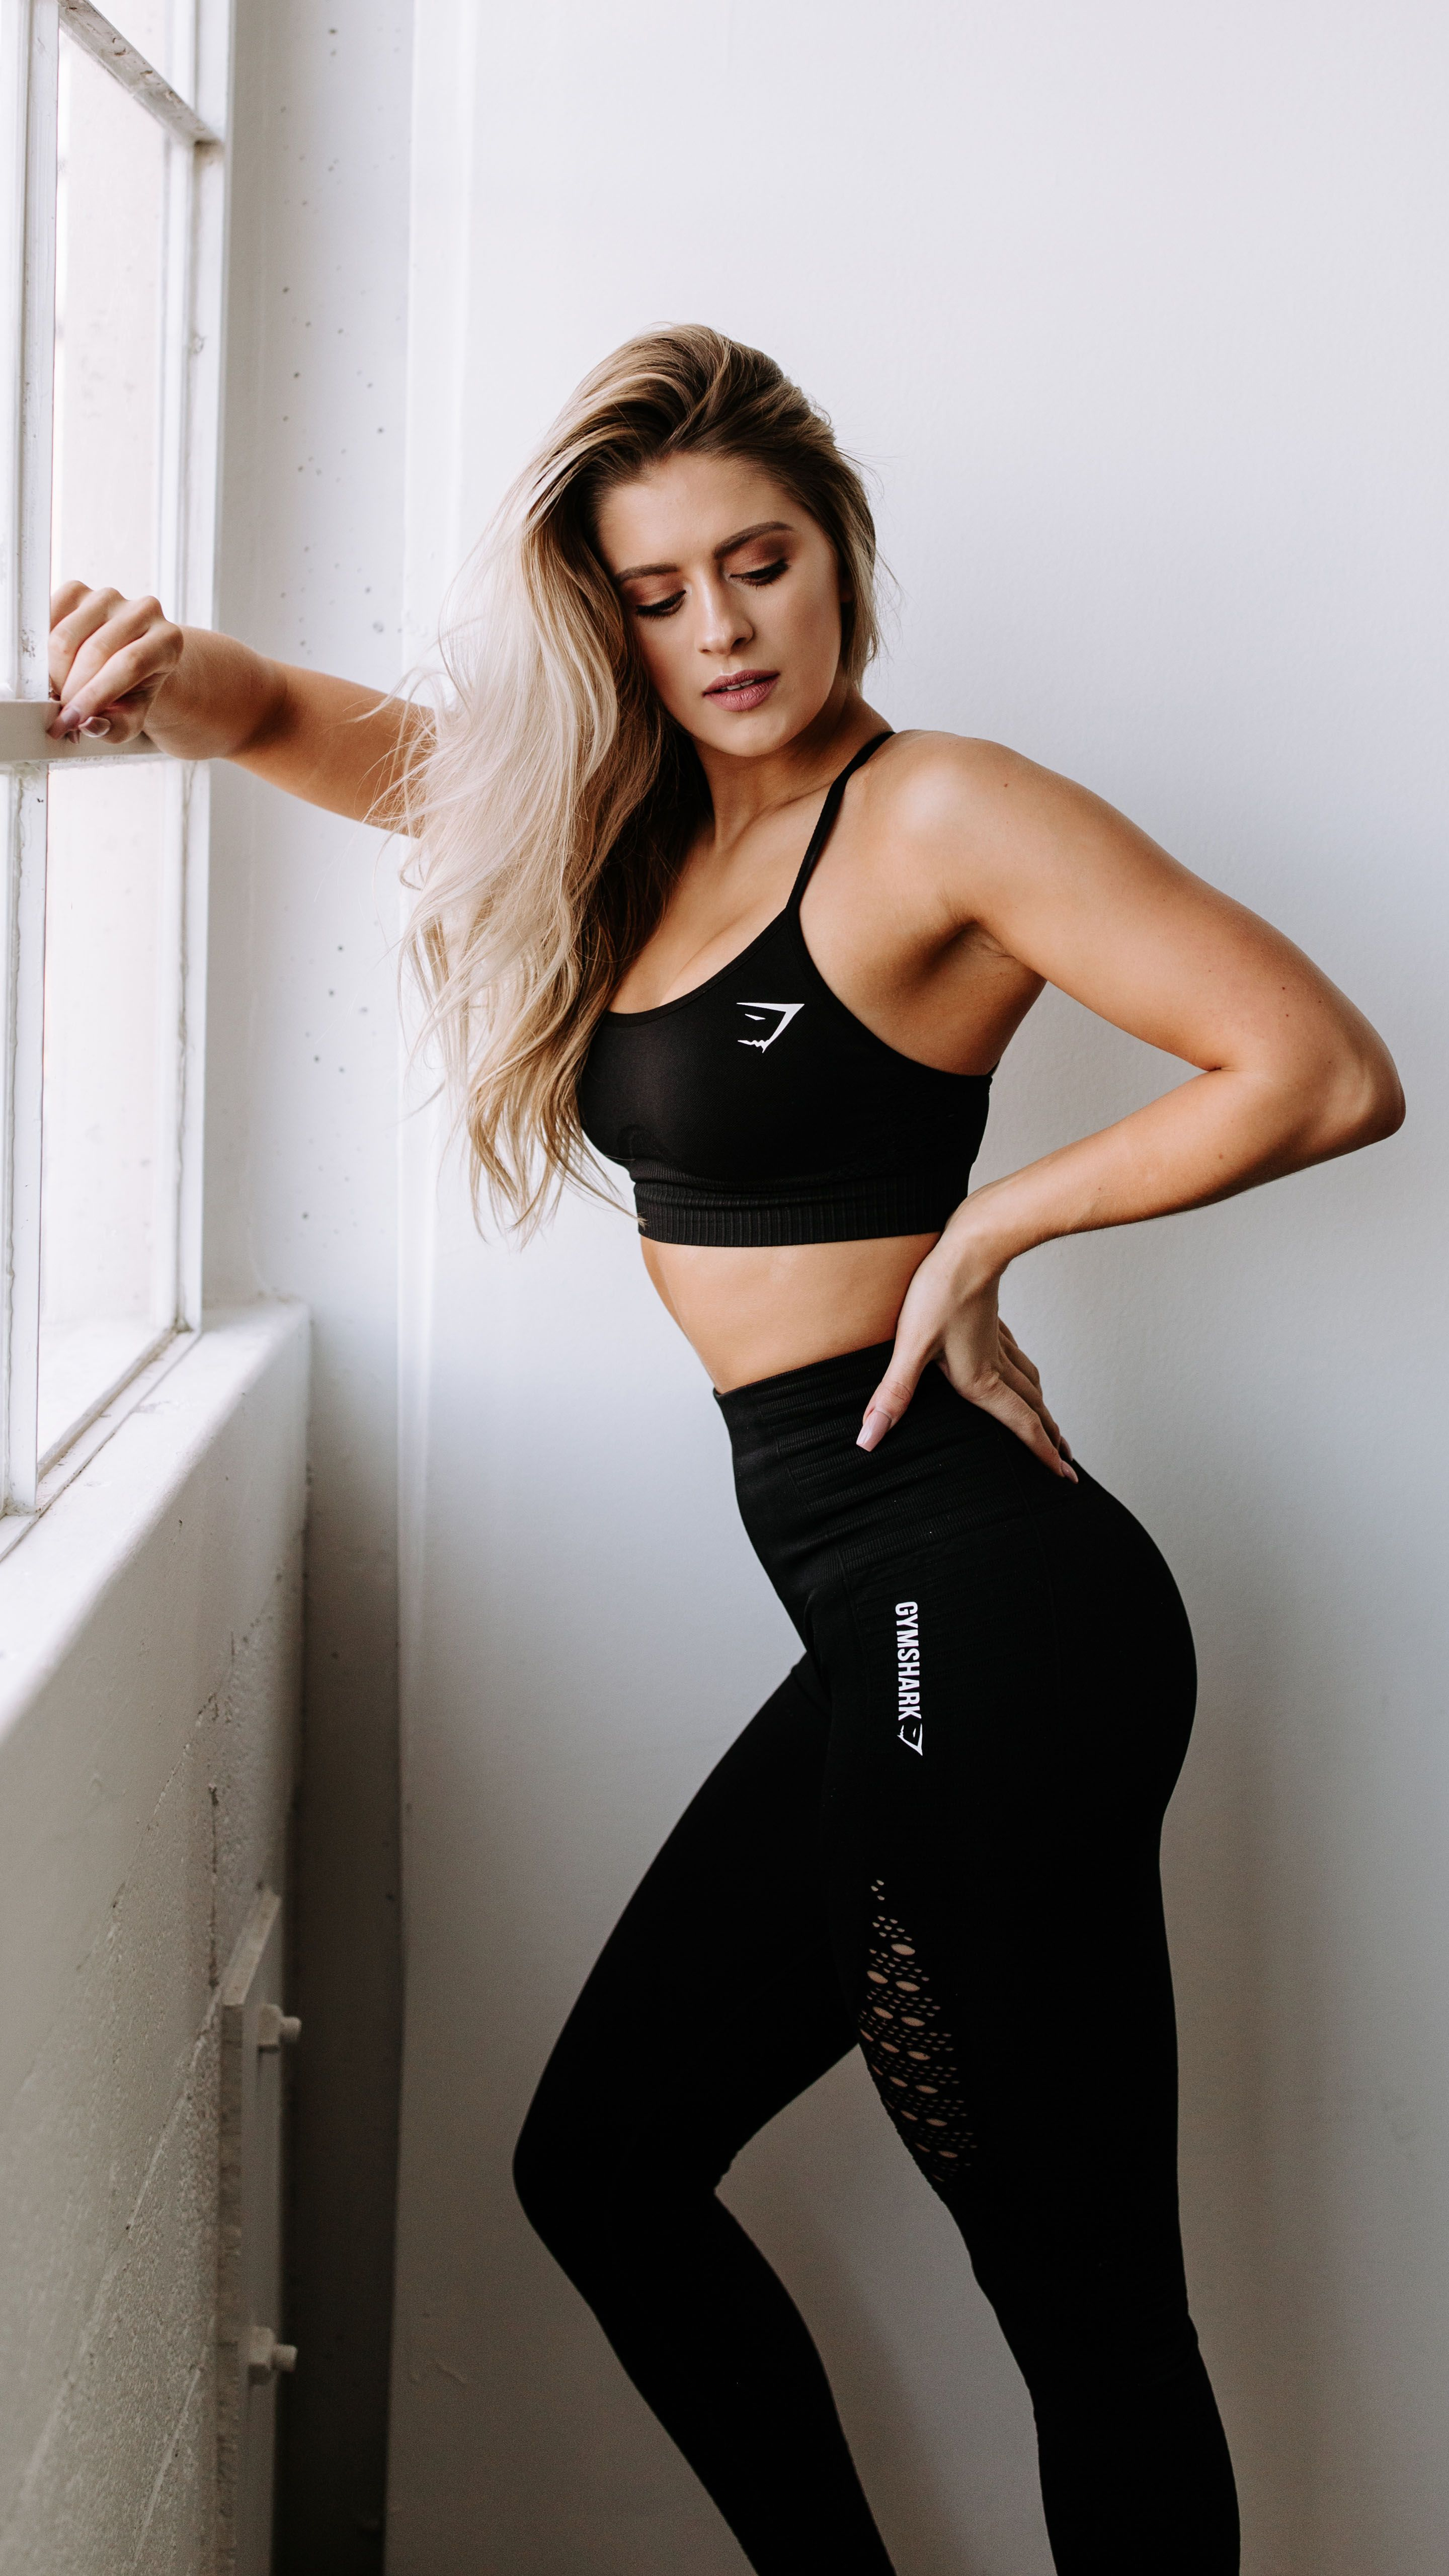 cd727e3f3efeb Gymshark athlete